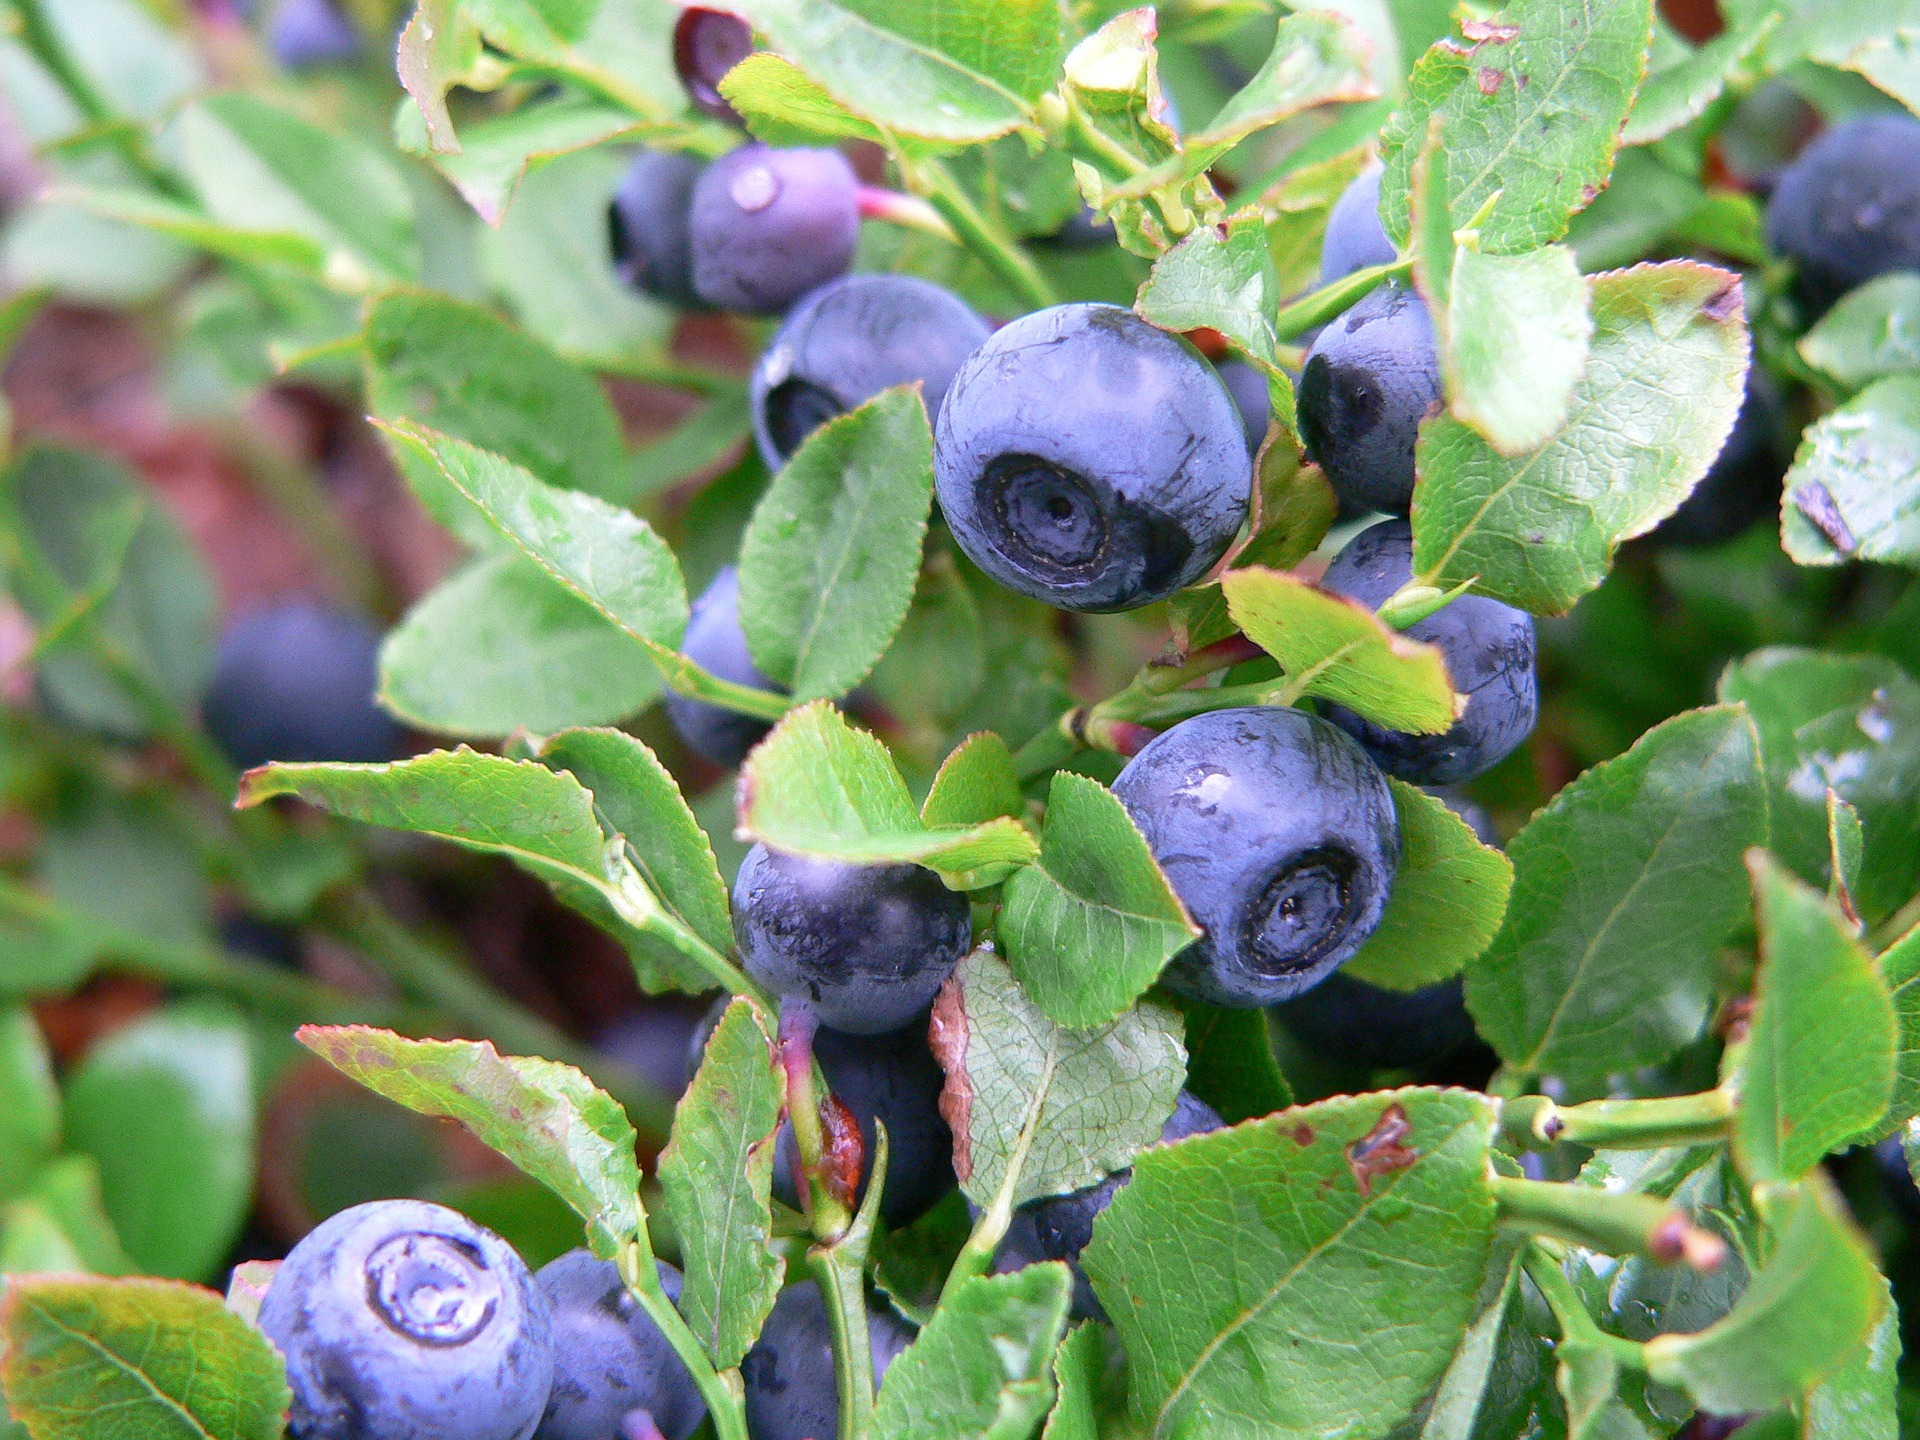 blueberries-2887933_1920.jpg